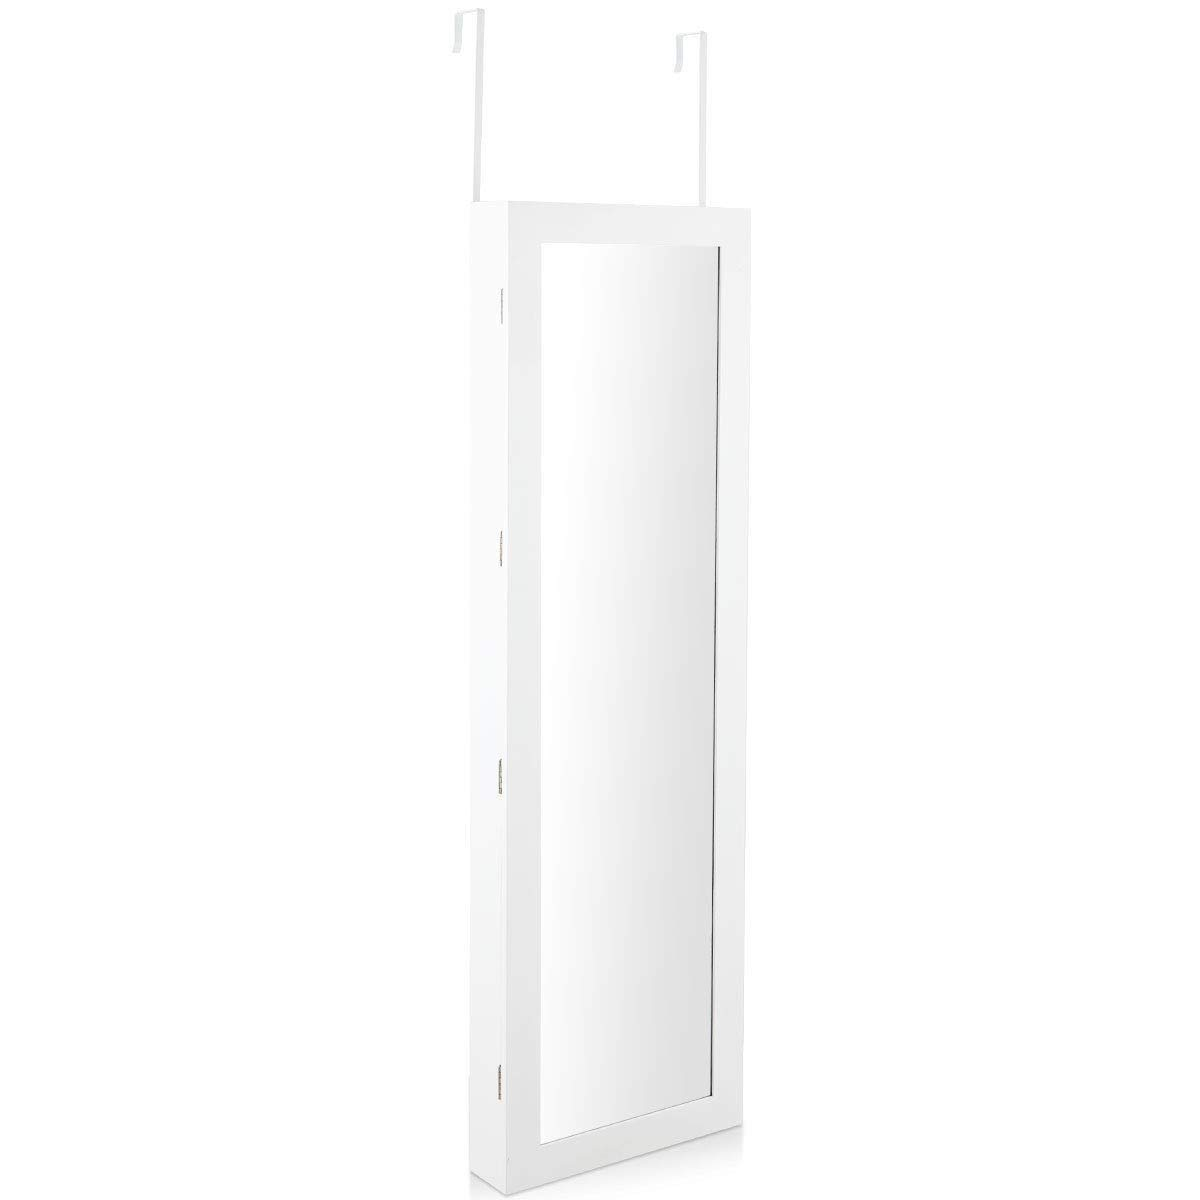 LordBee White New Wall Mounted Lockable Mirror Jewelry Cabinet with LED Light Full Length Furniture Home Bedroom Living Room Entryway Sturdy and Durable